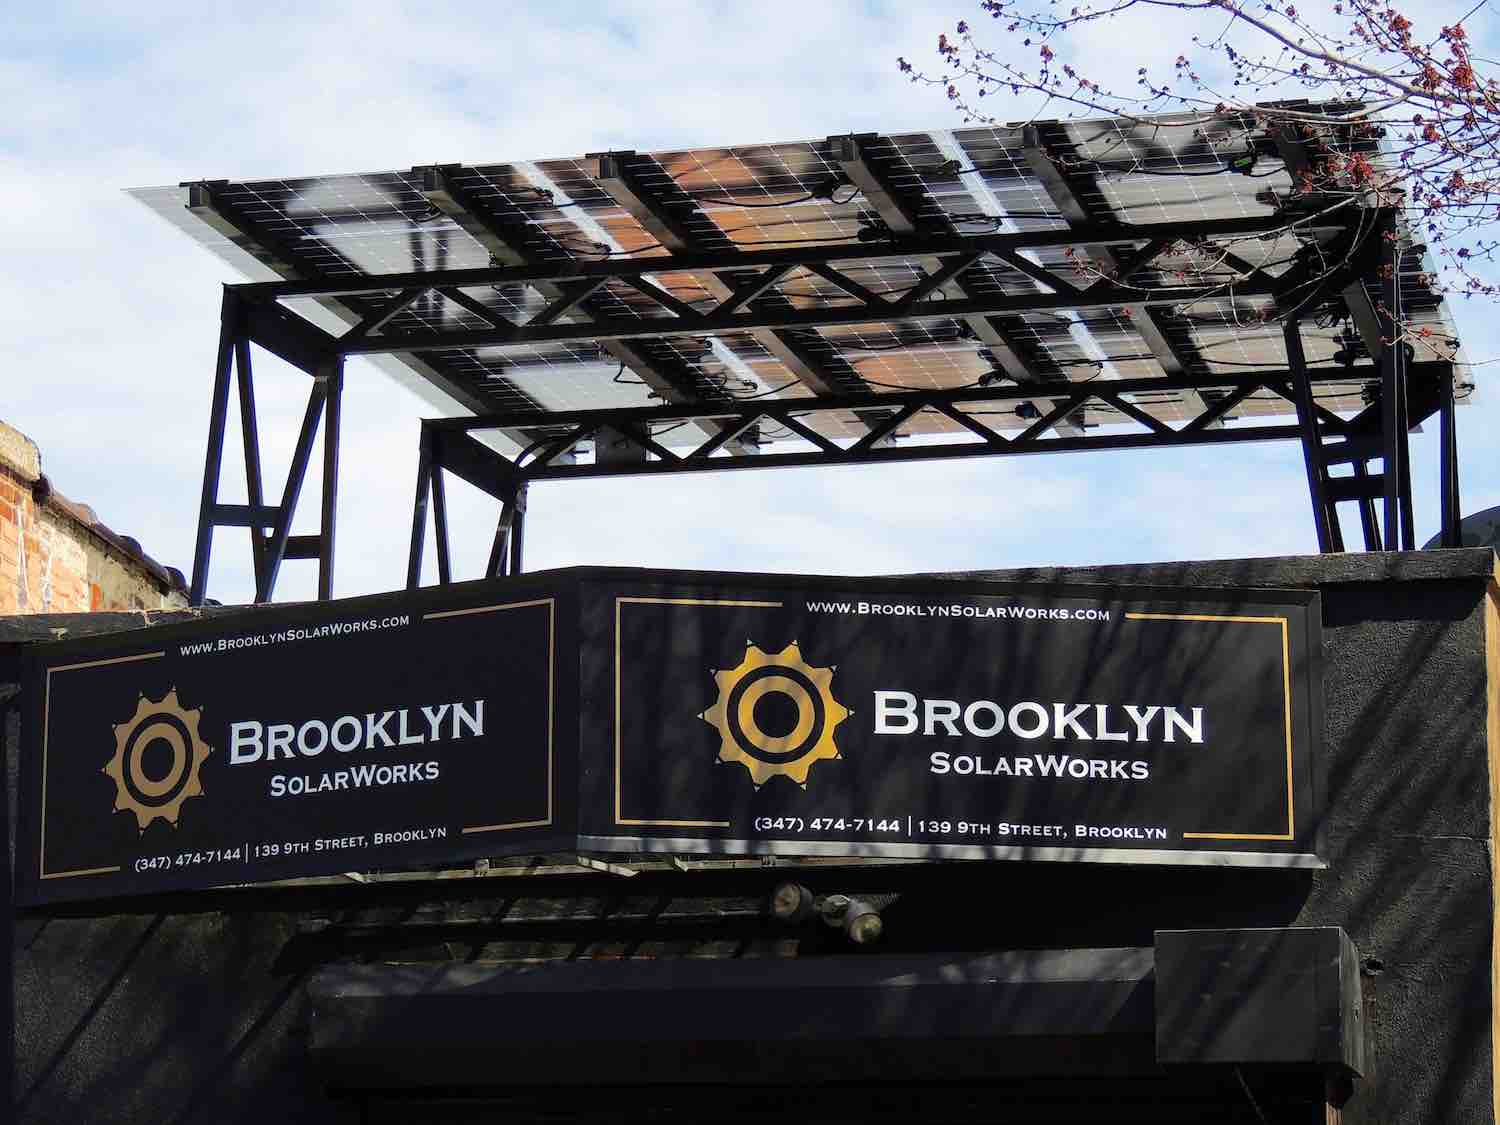 Brooklyn Solar Works